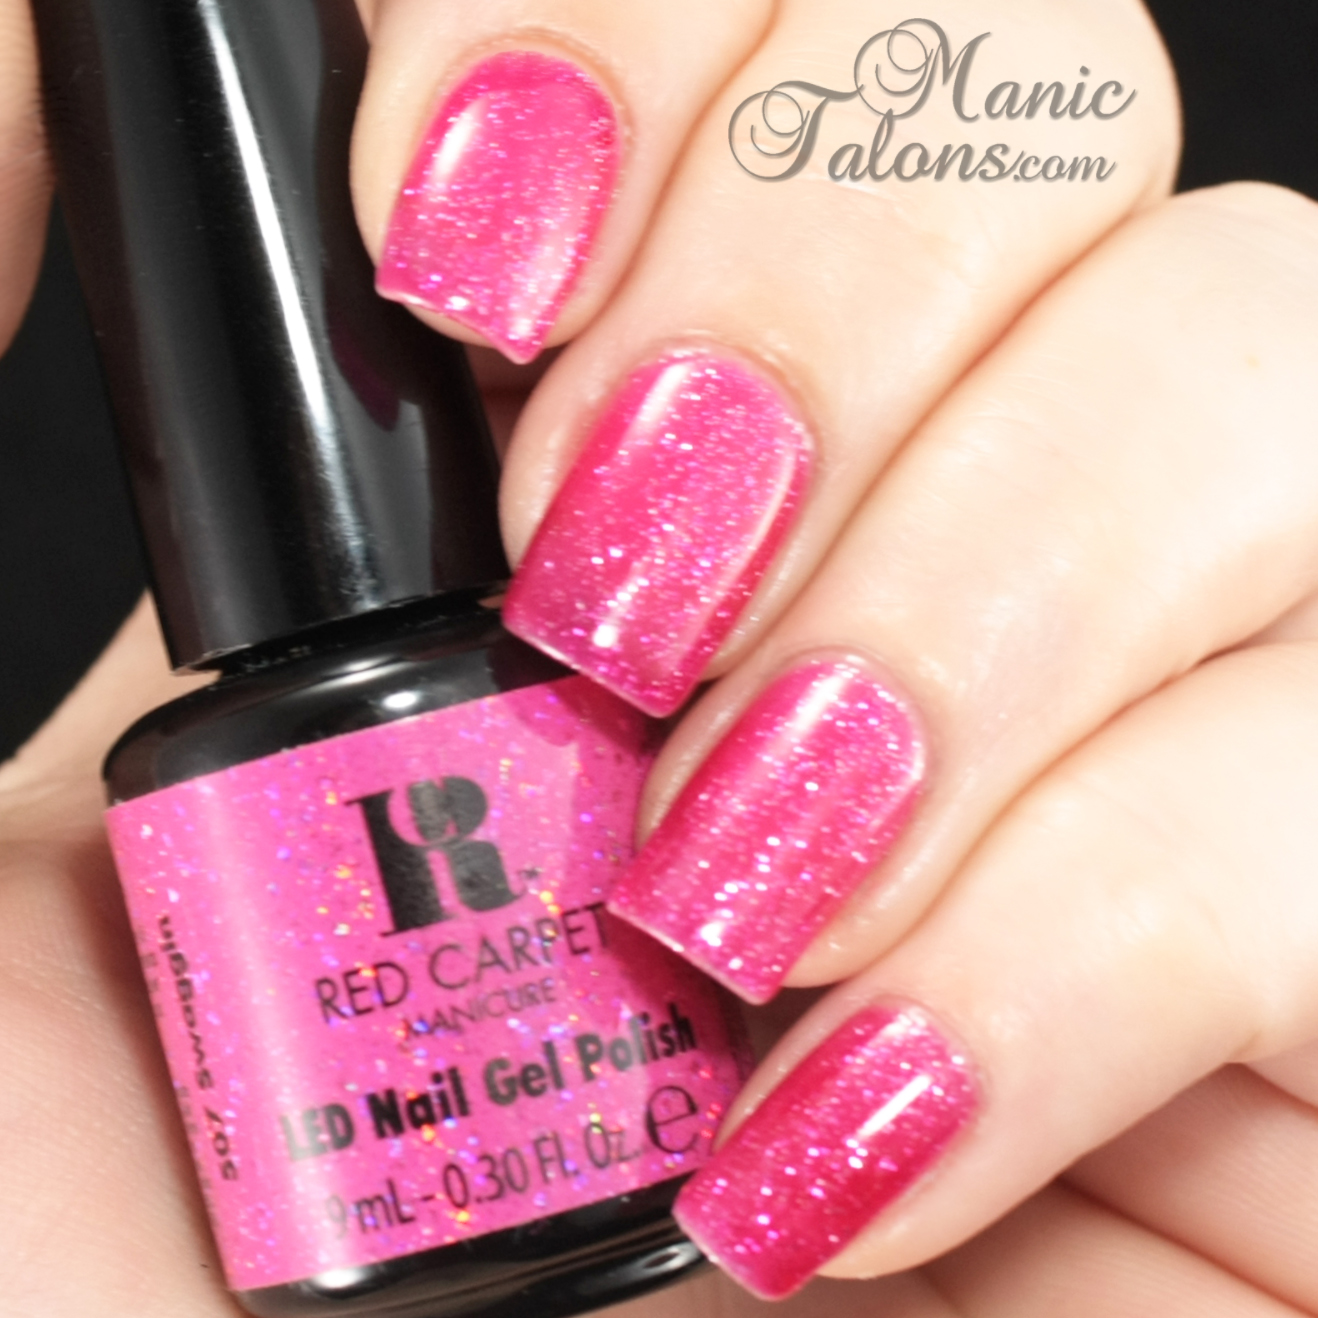 Red Carpet Manicure Soak Off Gel Polish Swaggin swatch